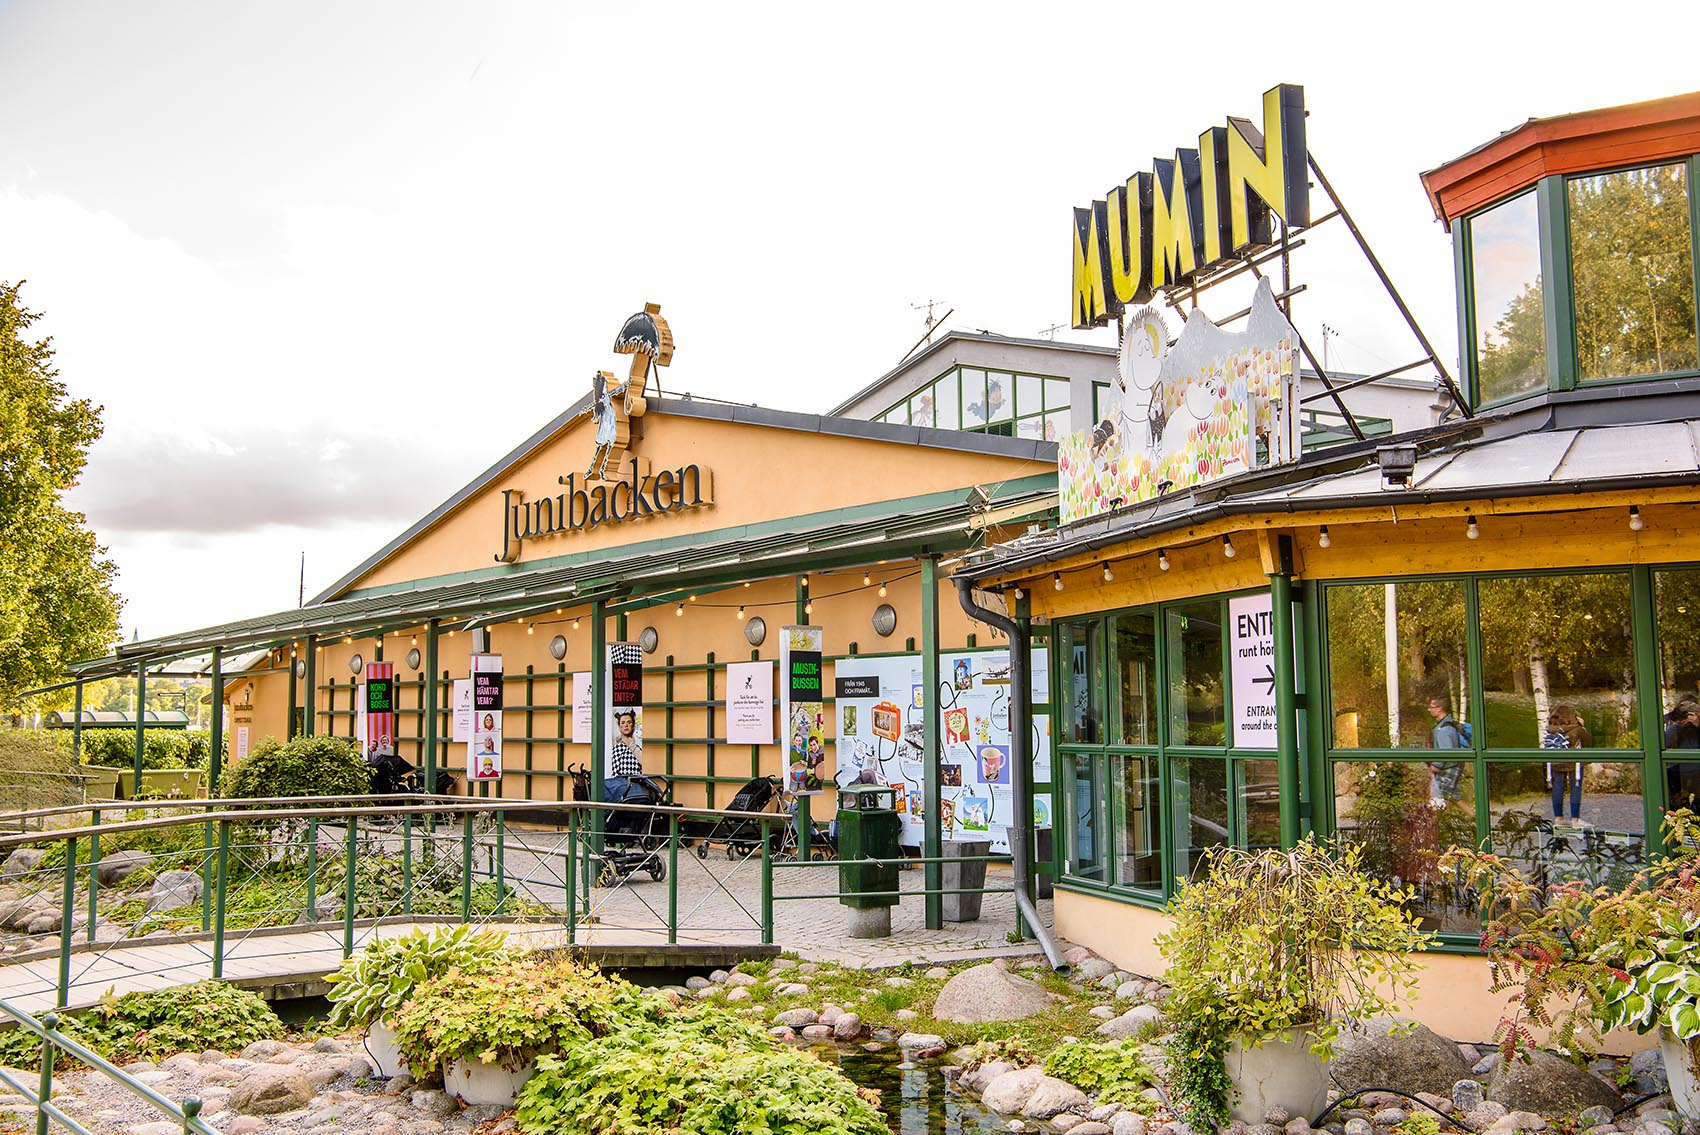 Junibacken-childrens-museum-stockholm